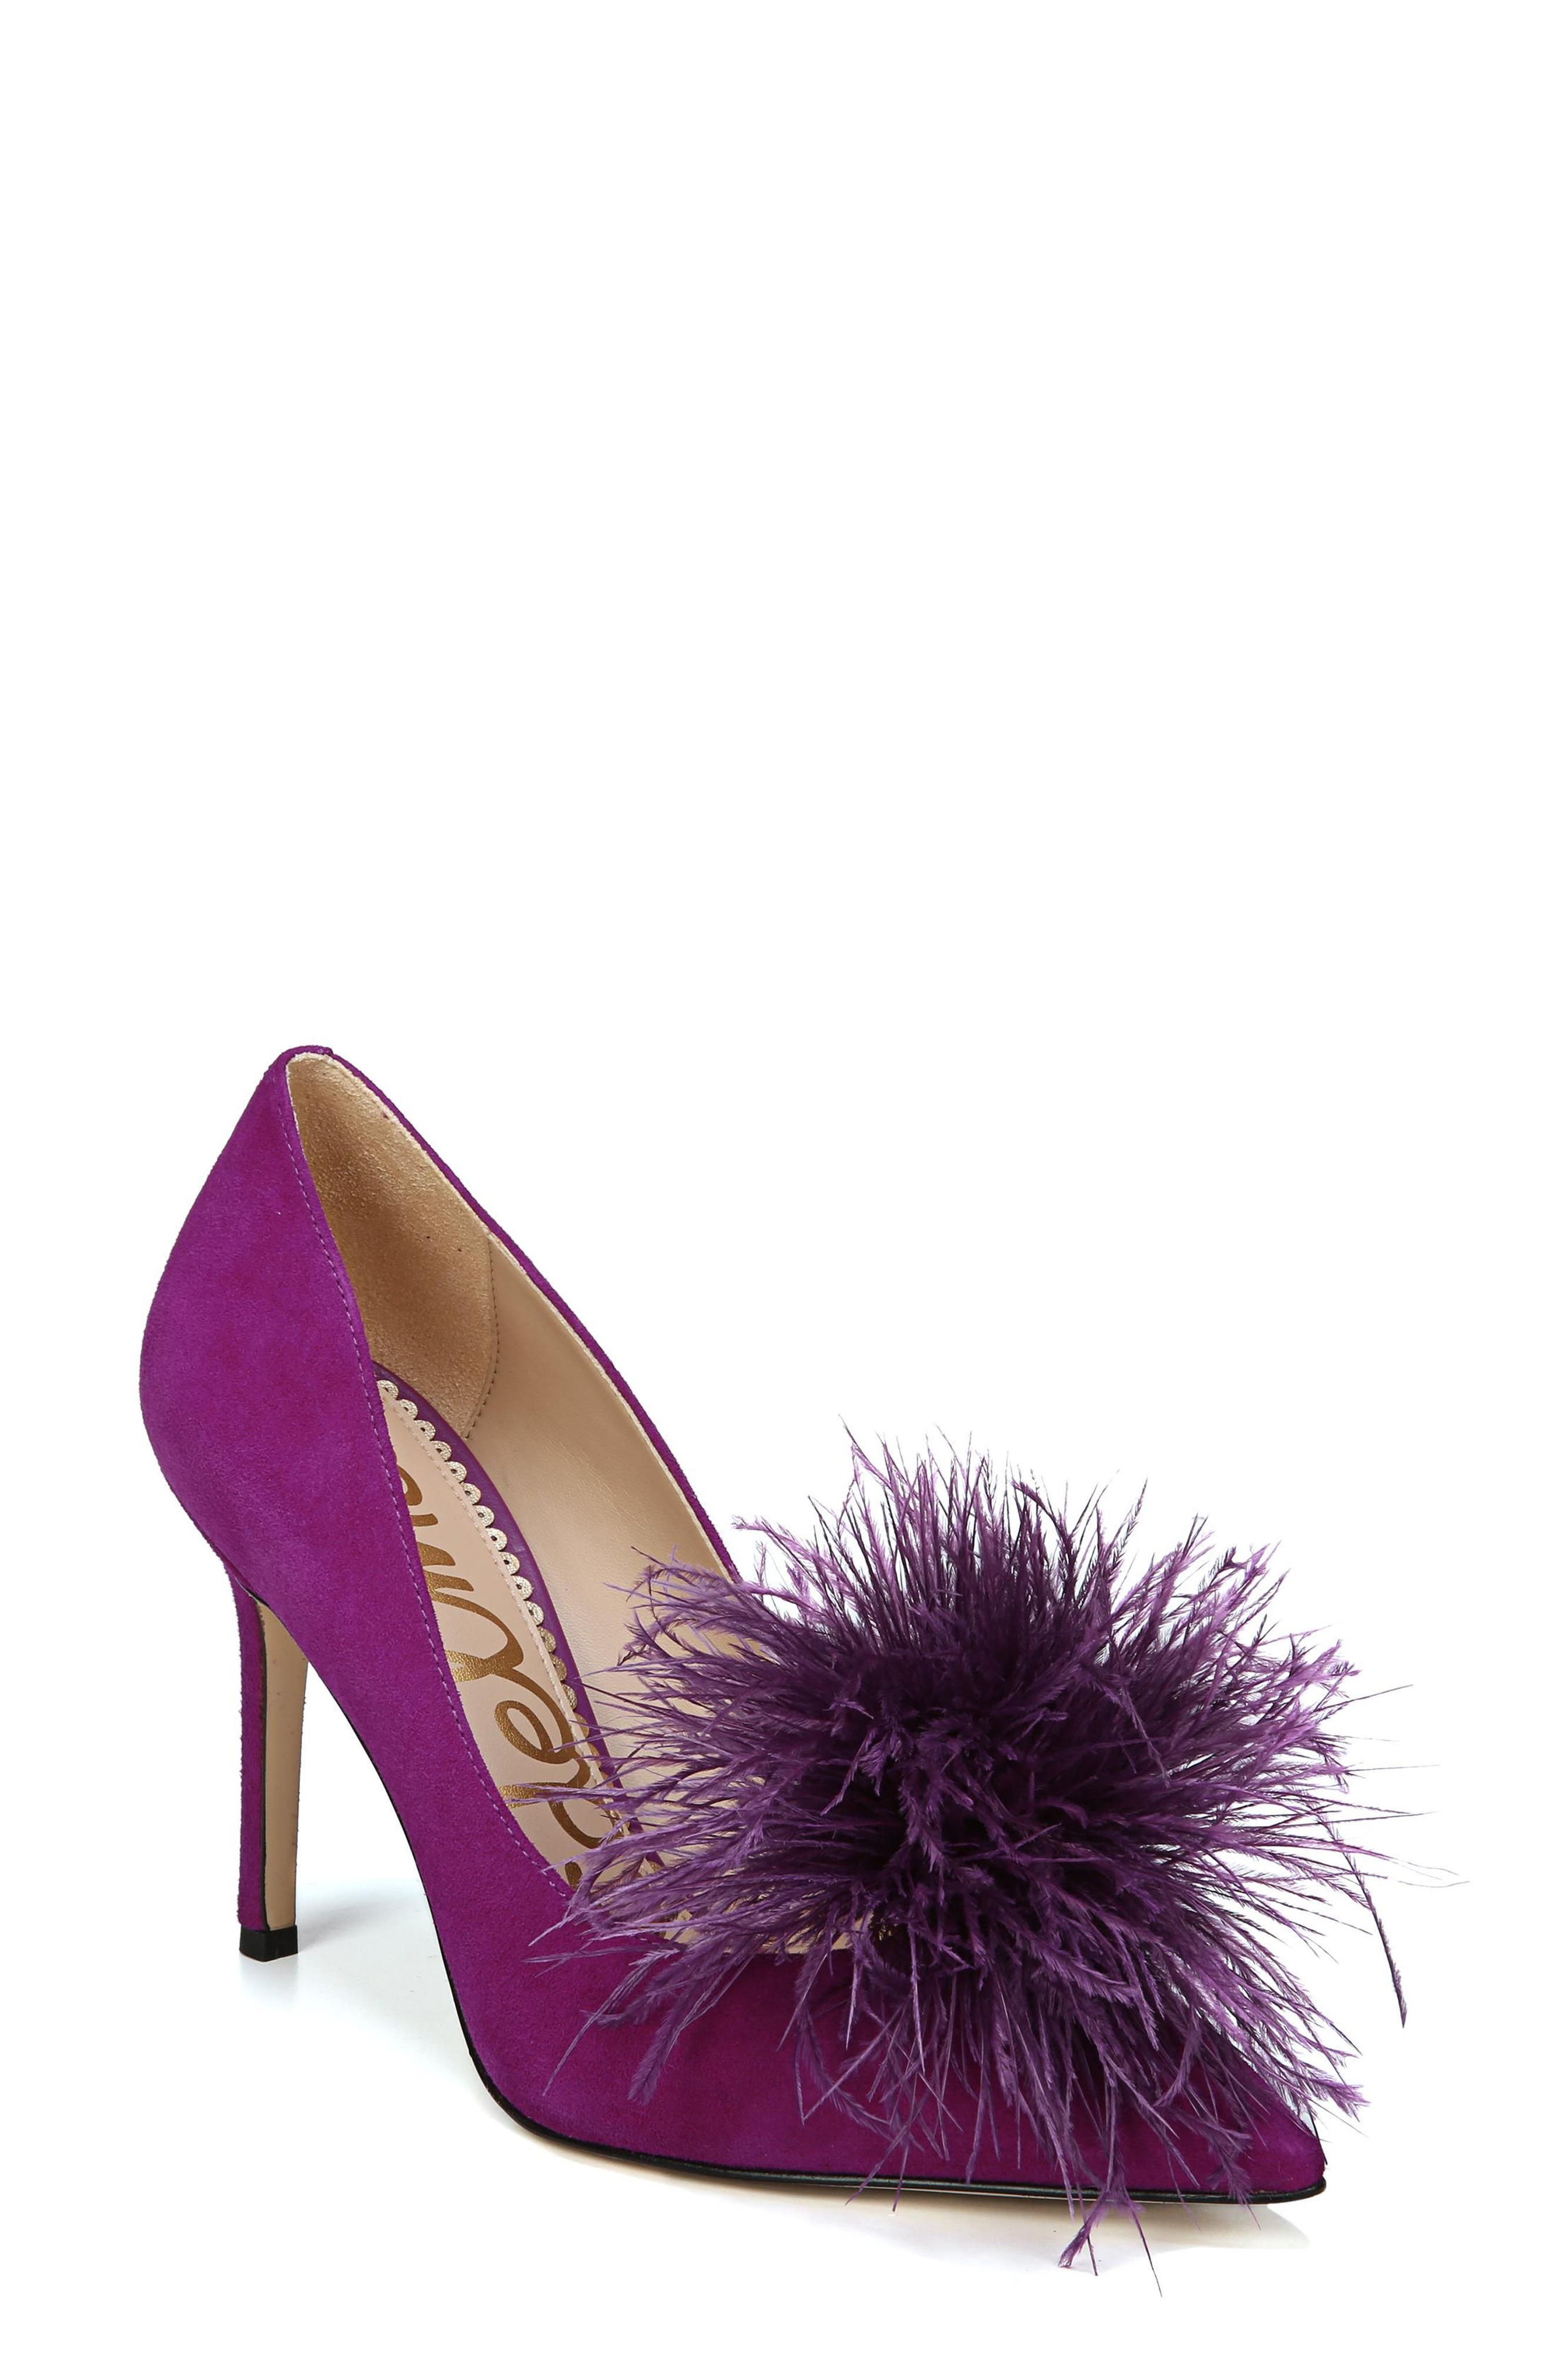 Haide Feather Pompom Pump,                             Main thumbnail 1, color,                             Laser Purple Leather